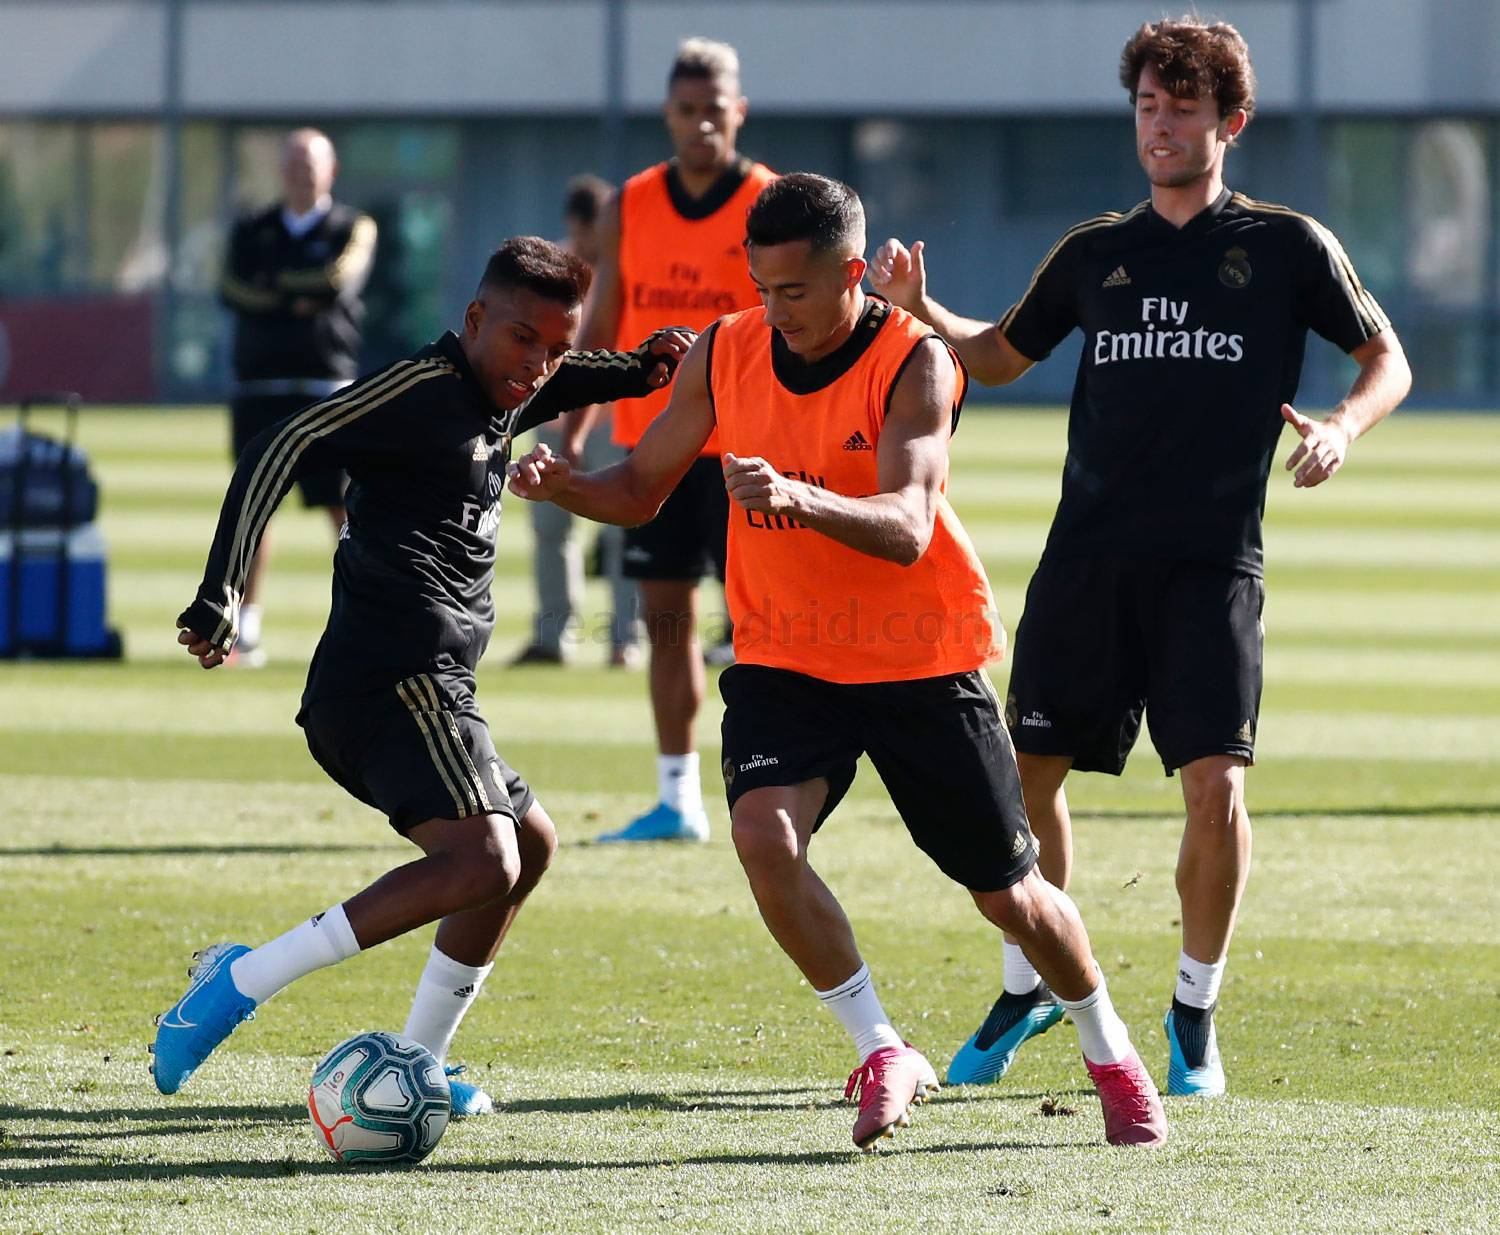 Real Madrid - Entrenamiento del Real Madrid  - 06-09-2019